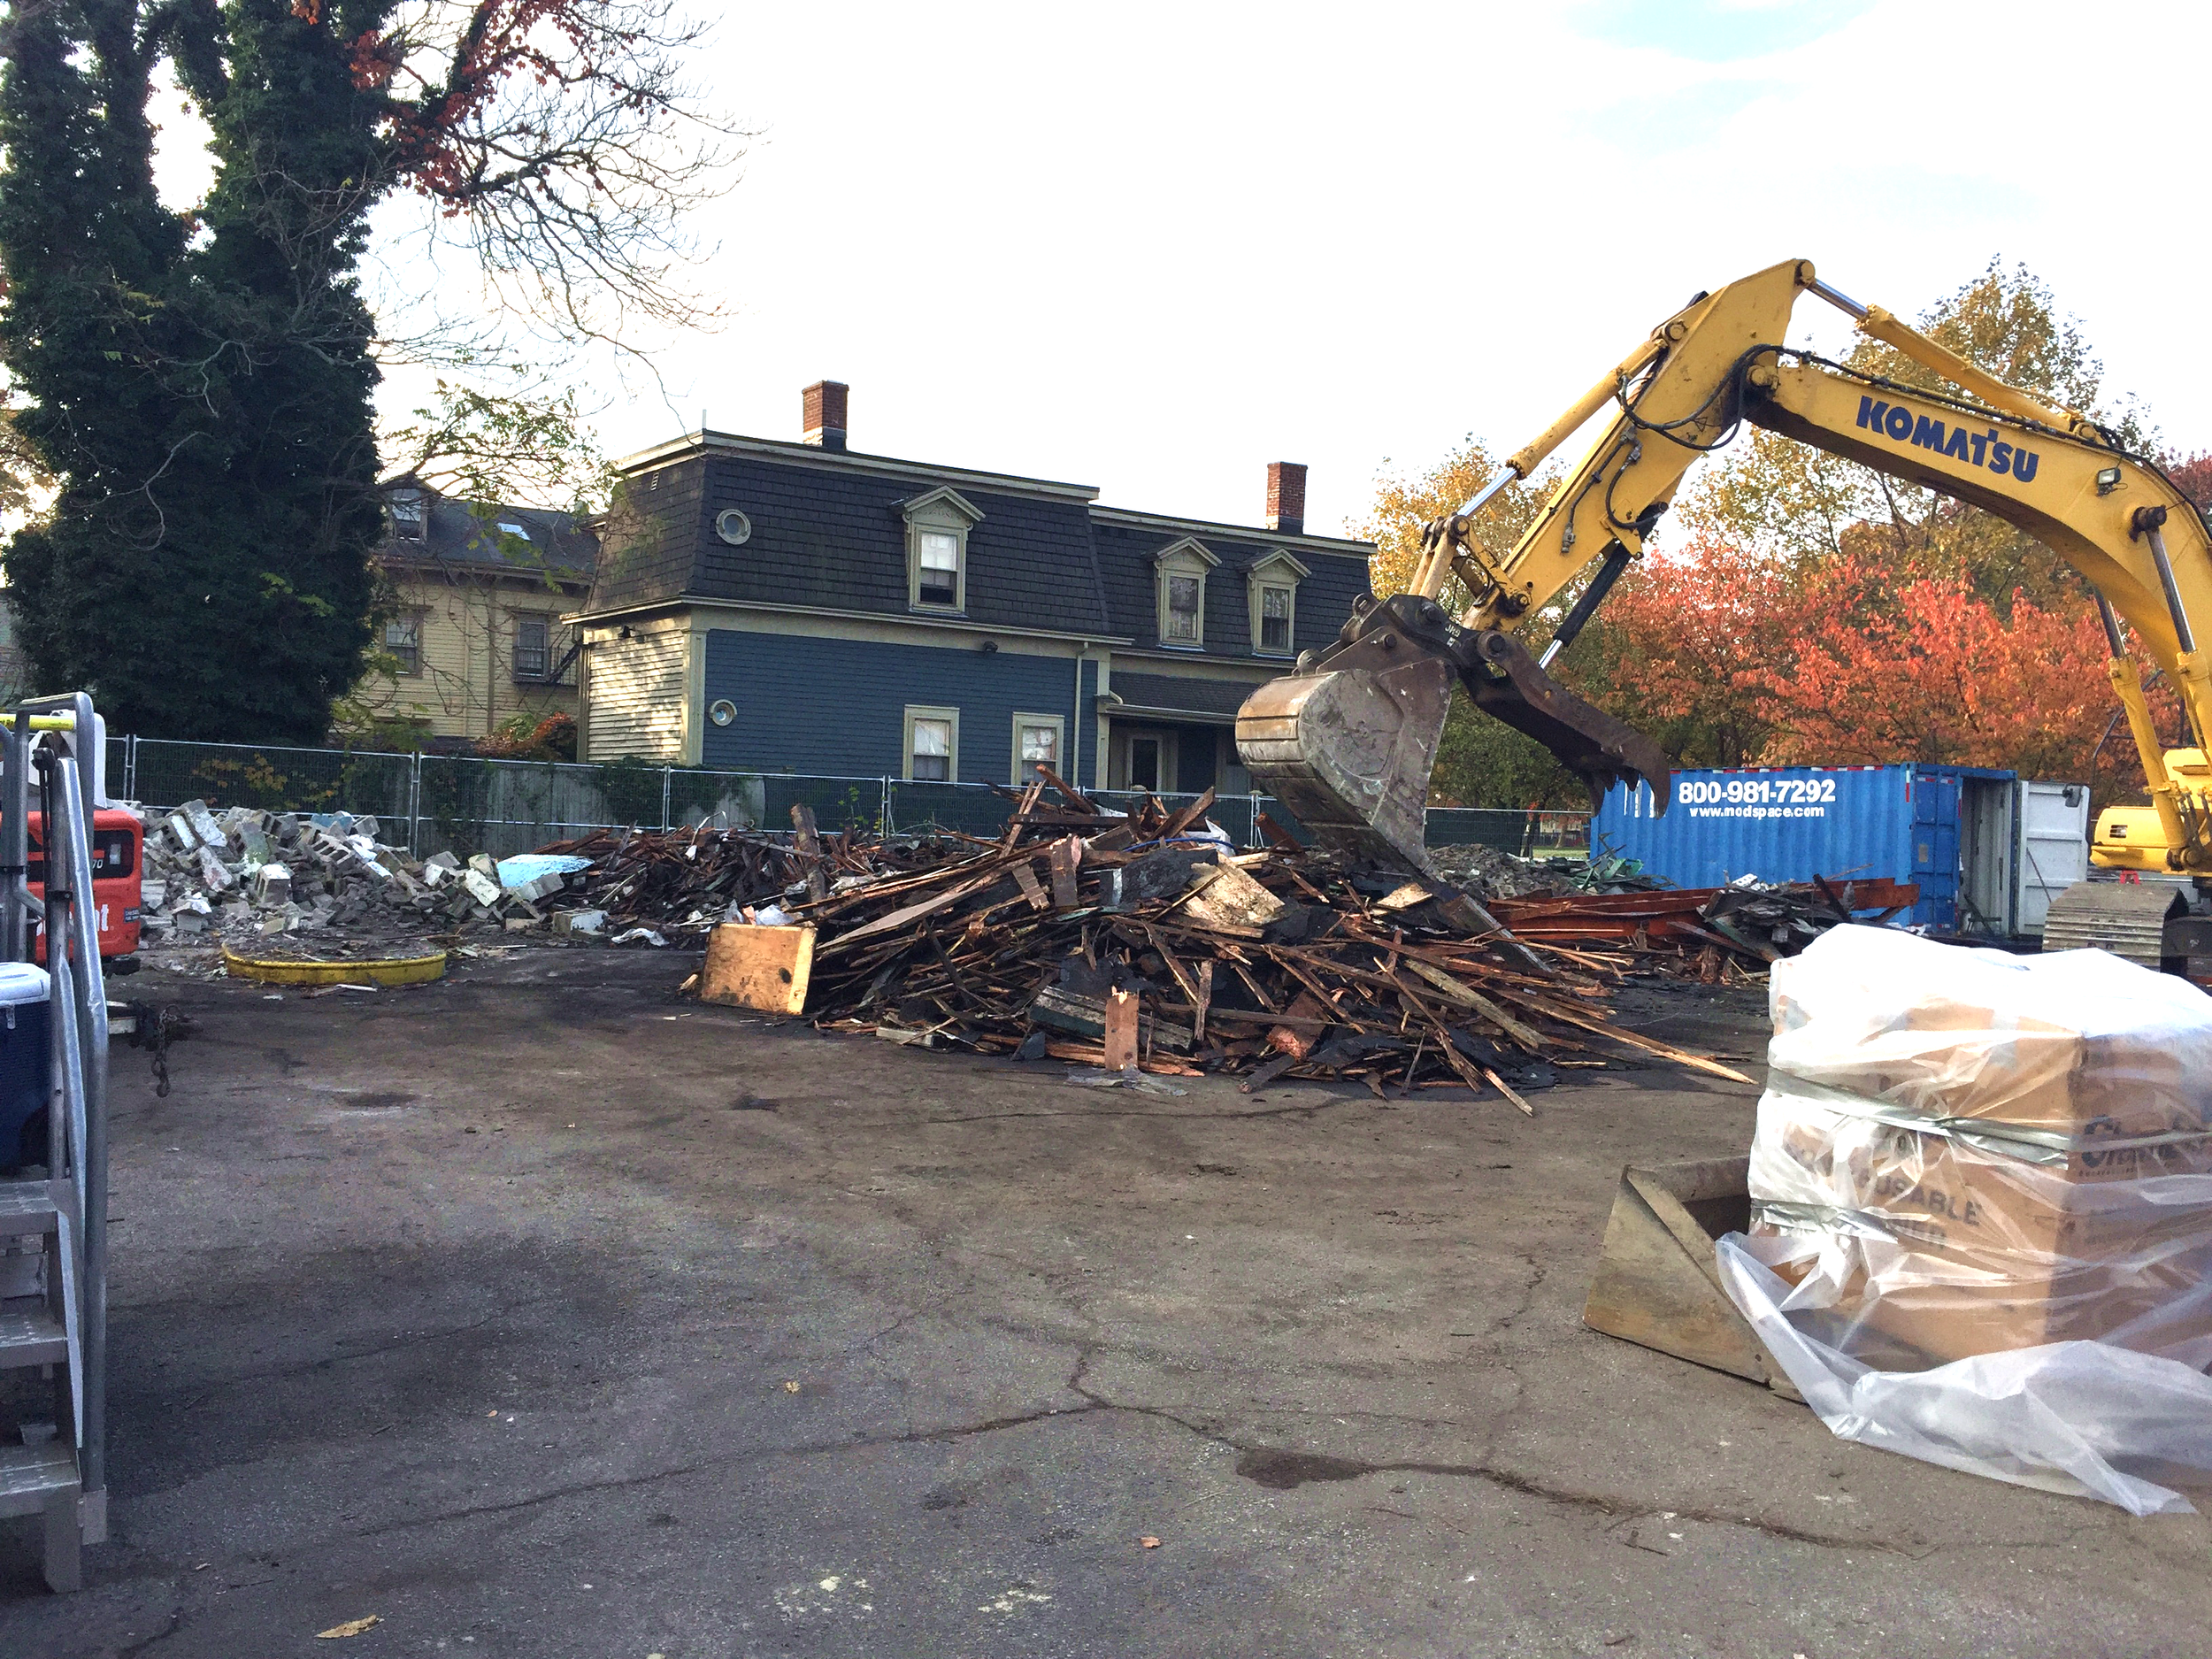 The building is down – November 2016